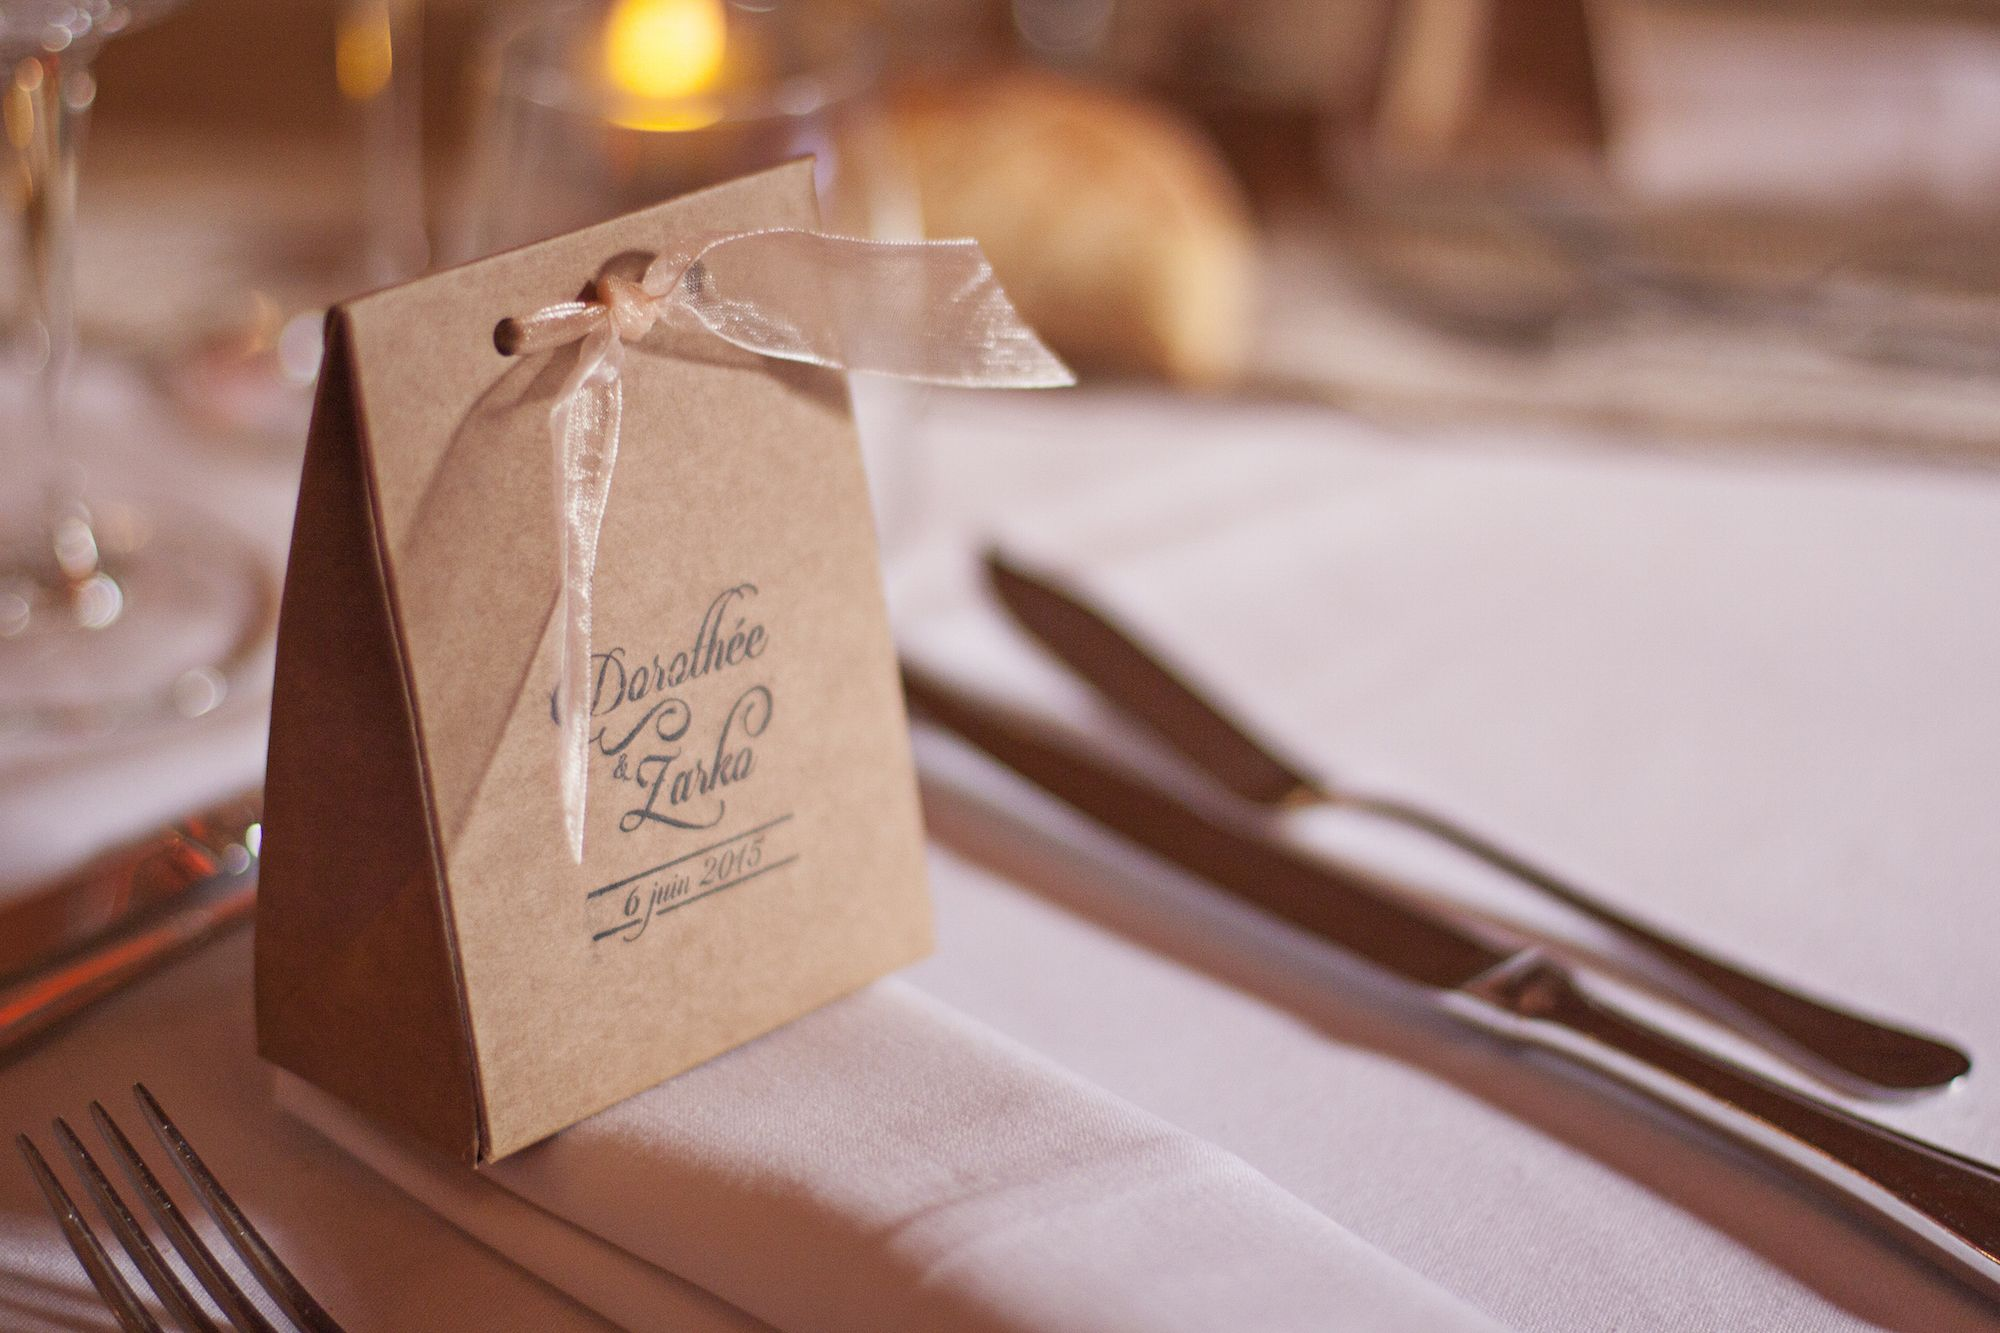 DIY Wedding Favours · Wedding of Dorothée and Zarko in Burgundy, France | Photo by @mariemarrymeinc #mariage #wedding #calligraphy #calligraphie #rustic #champêtre #DIY #handmade #bridal #table #french #bourgogne #satin #cadeau #favour #gift #boheme #shabby #chic #vintage #craft #crafty #love #romantic